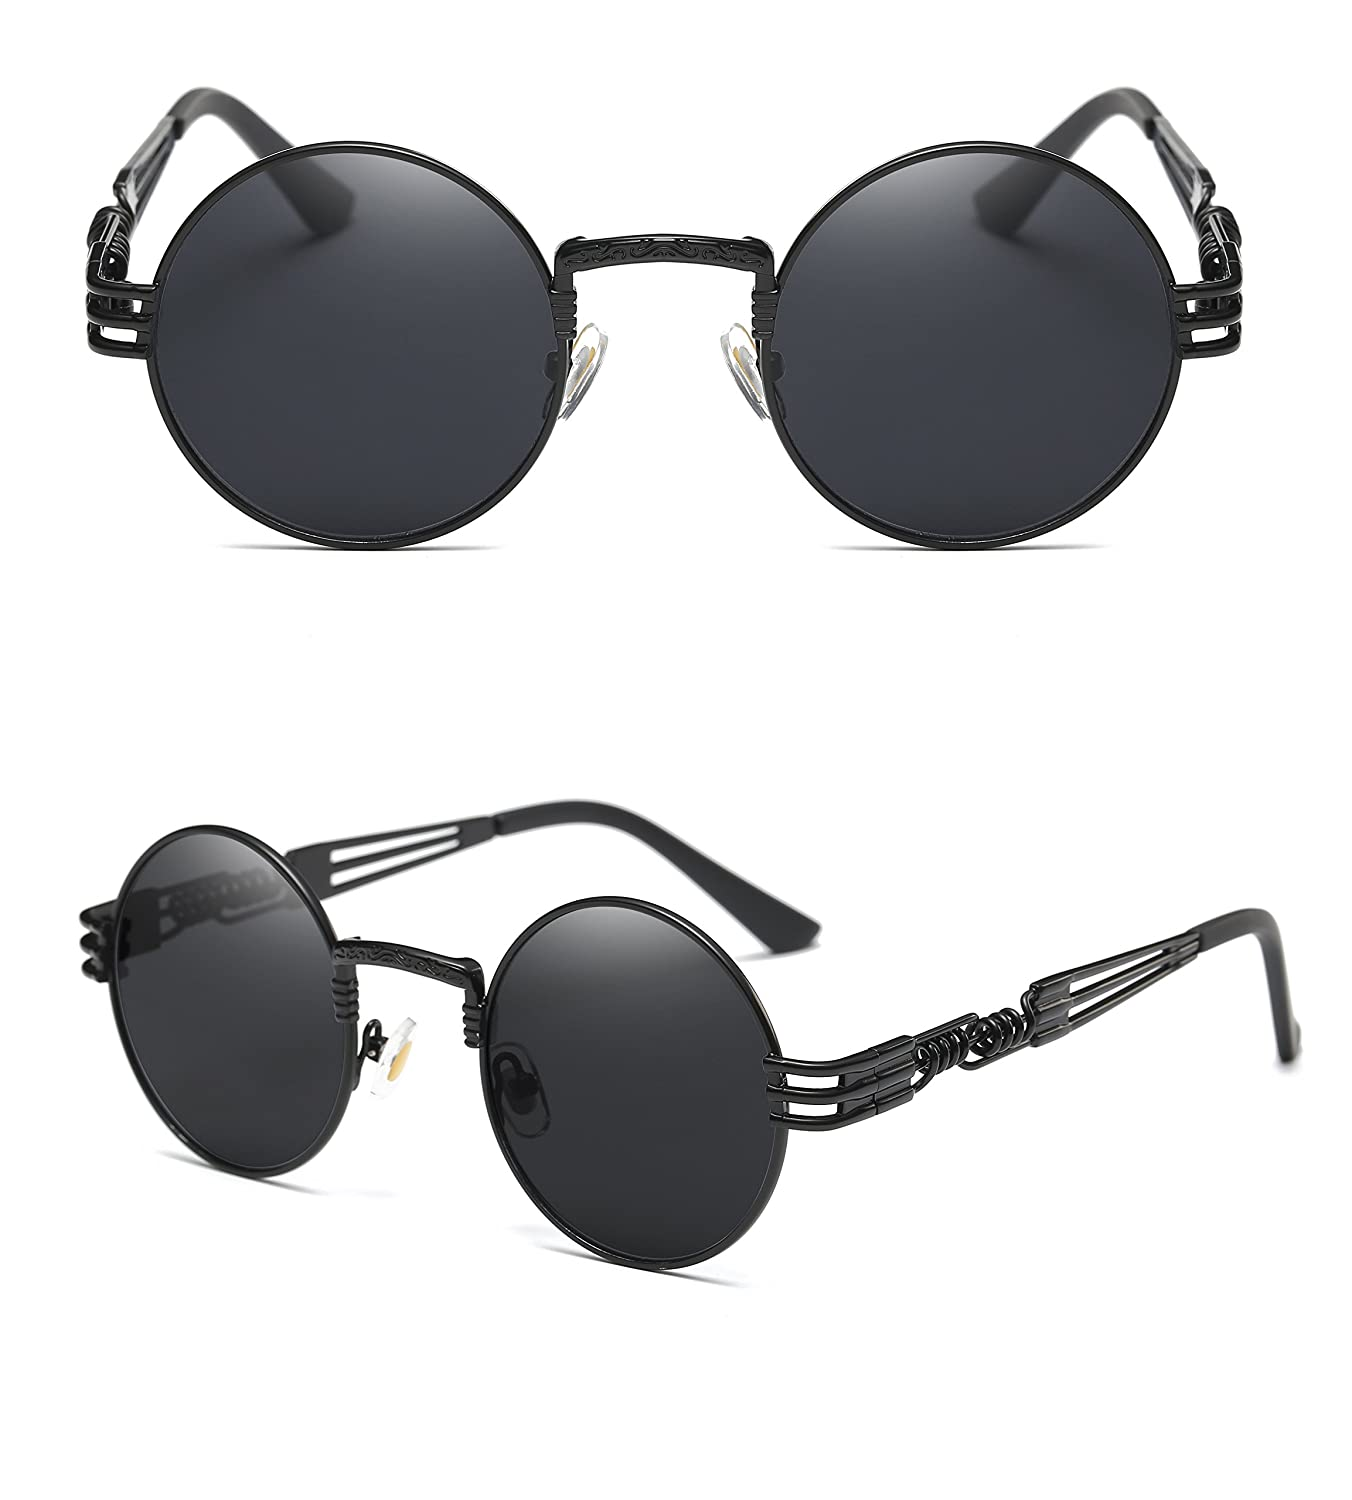 8fd21aecaa7 Amazon.com  GAMT John Lennon Glasses Quavo Steampunk Round Sunglasses  Circle Metal Frame Eyewear for Men and Women Black Frame Grey Lens  Shoes